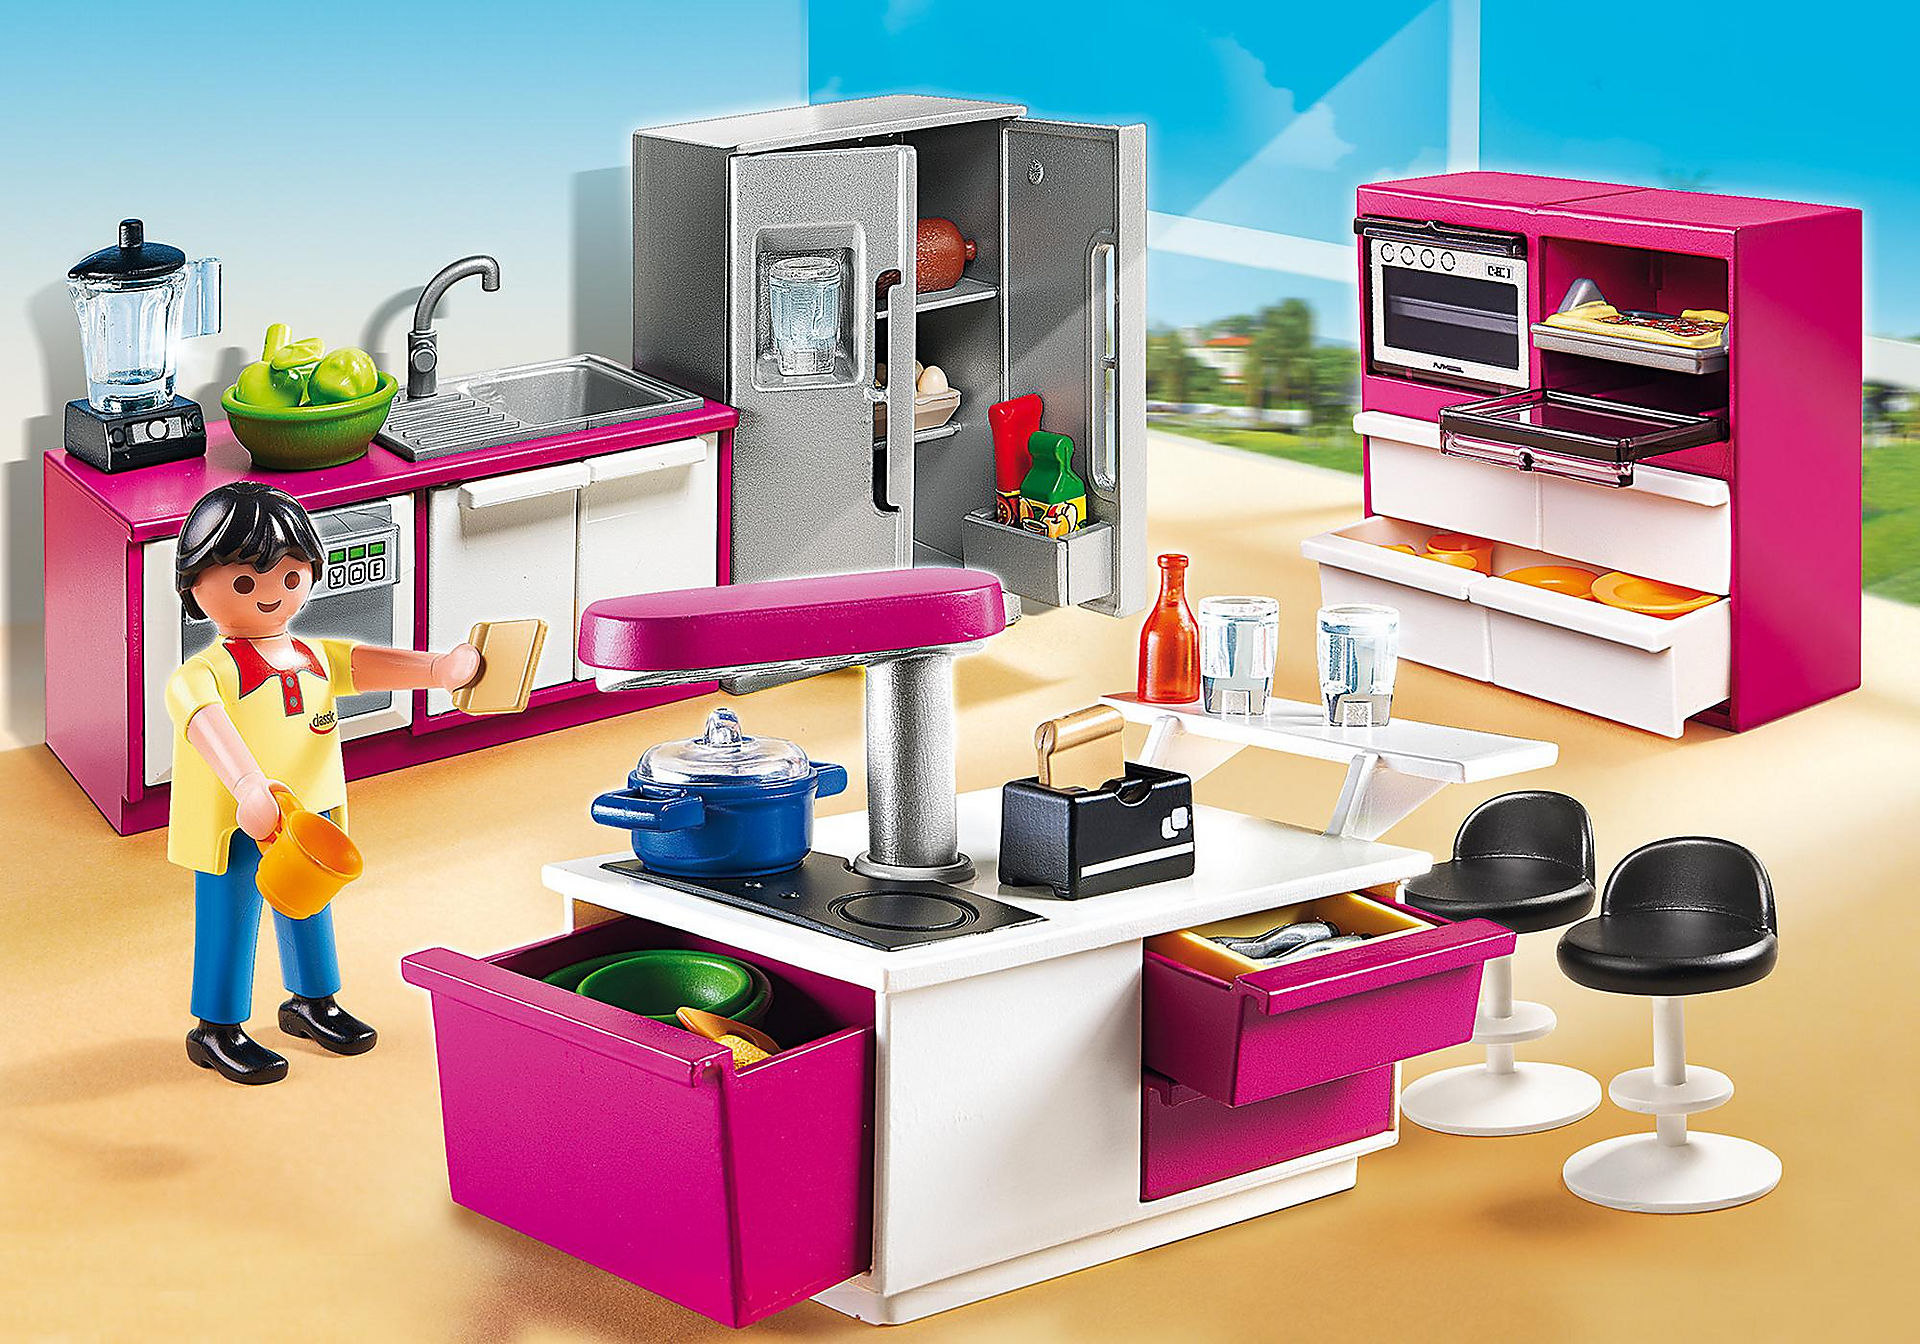 http://media.playmobil.com/i/playmobil/5582_product_detail/BUCATARIE DE LUX